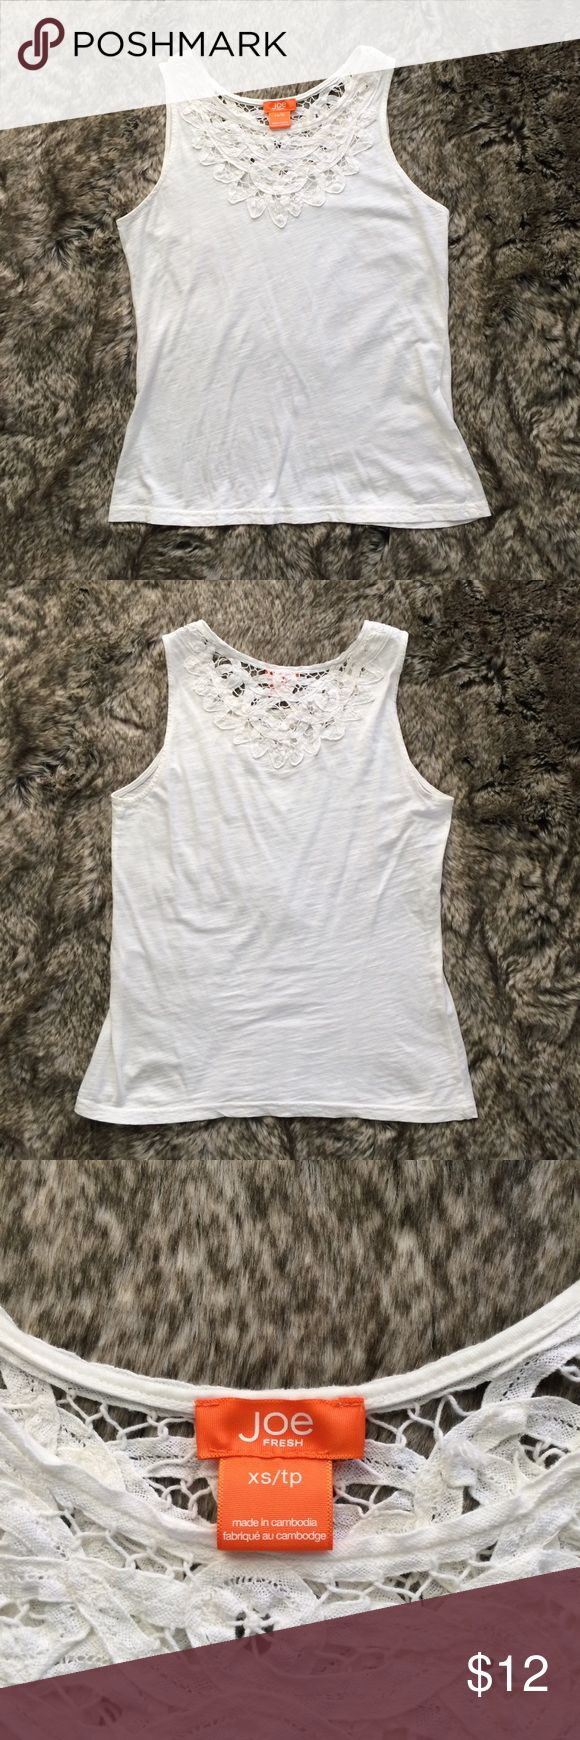 "Joe Fresh Lace Crochet Tank Top Cute and soft Joe Fresh white tank top with a crocheted neckline detail. Very good condition.  16"" armpit to armpit, 23"" shoulder to hem. Thanks for looking! Joe Fresh Tops Tank Tops"